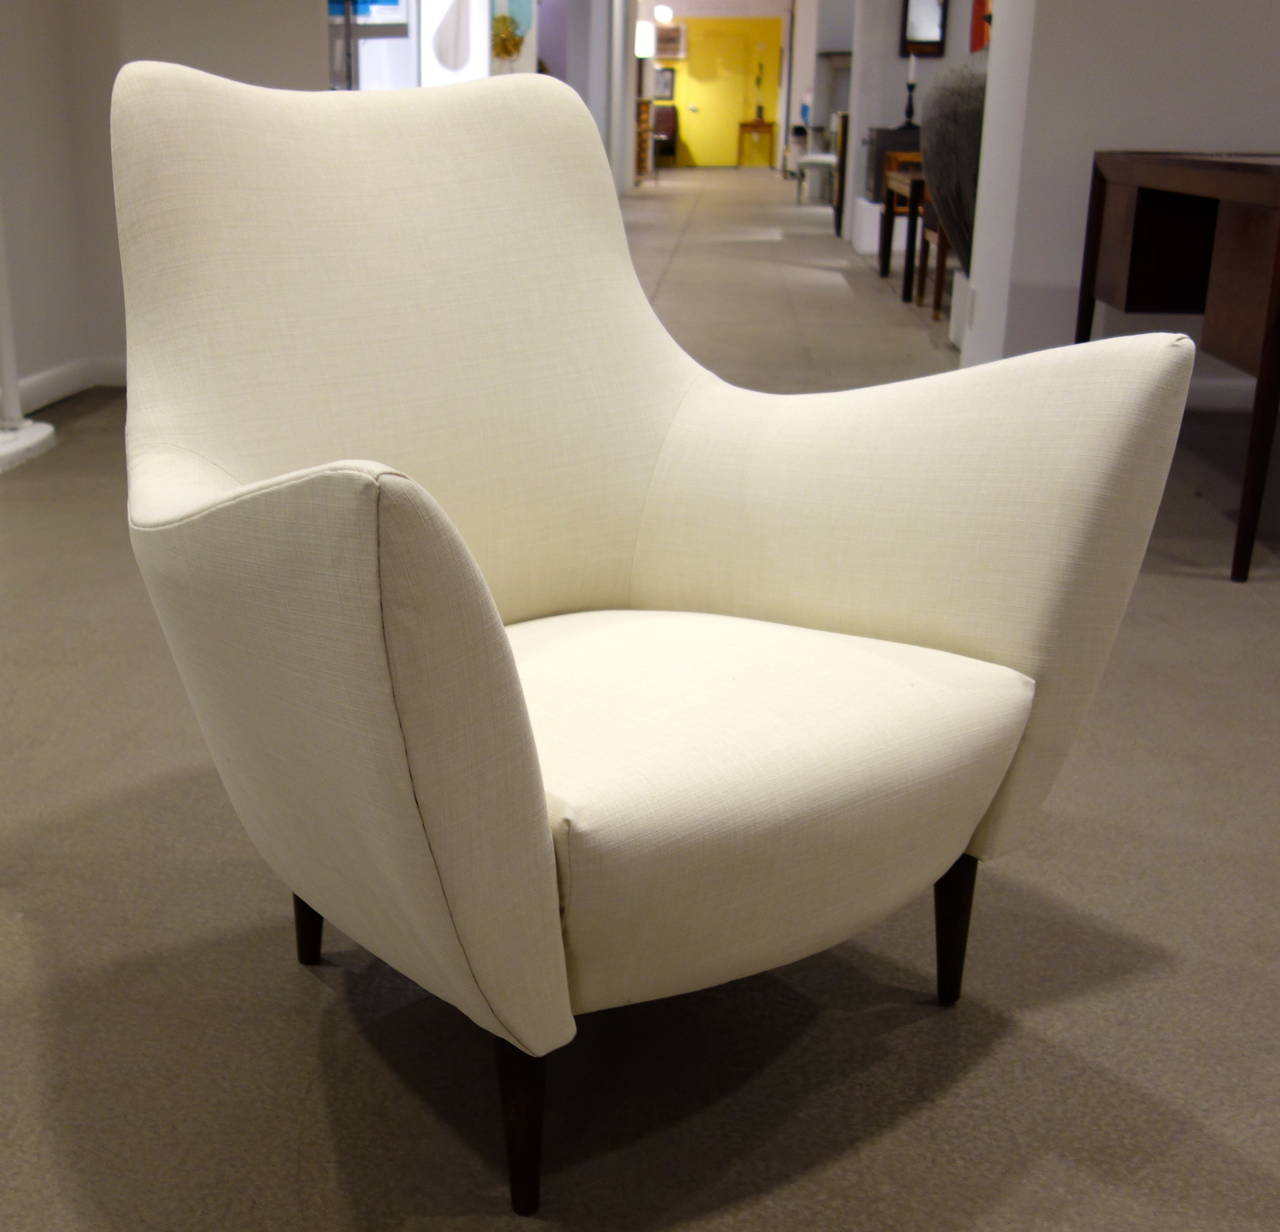 Pair Of Mid-Century Style Sculptural Italian Lounge Chairs